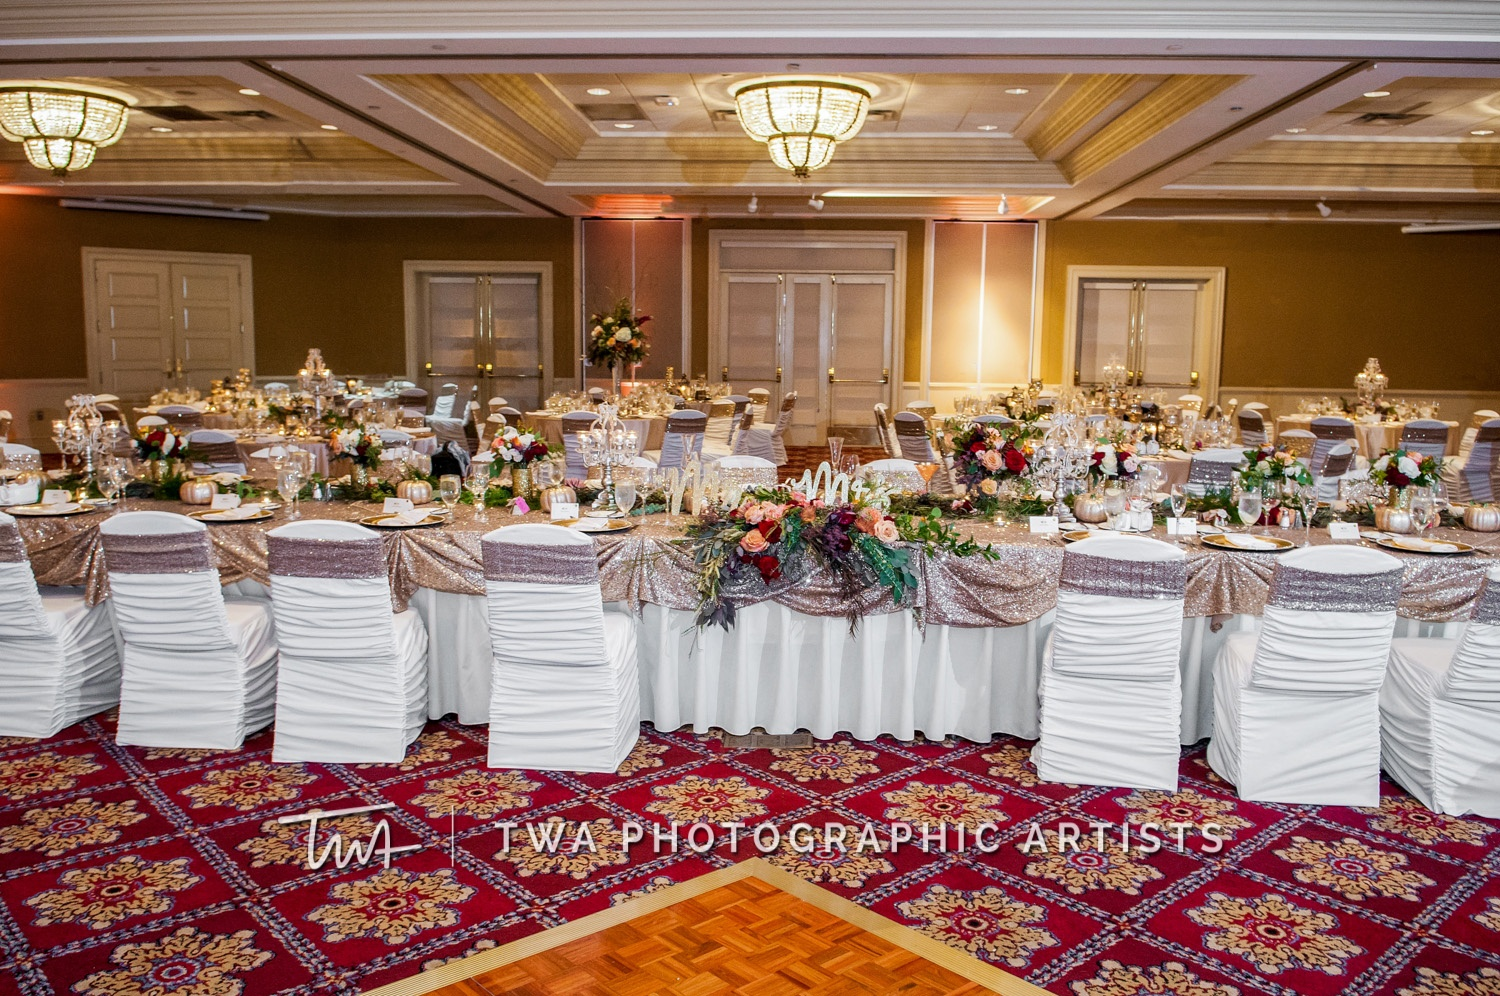 Chicago-Wedding-Photographer-TWA-Photographic-Artists-Bolingbrook-GC_kuhn_shelby_DR_DH-1313